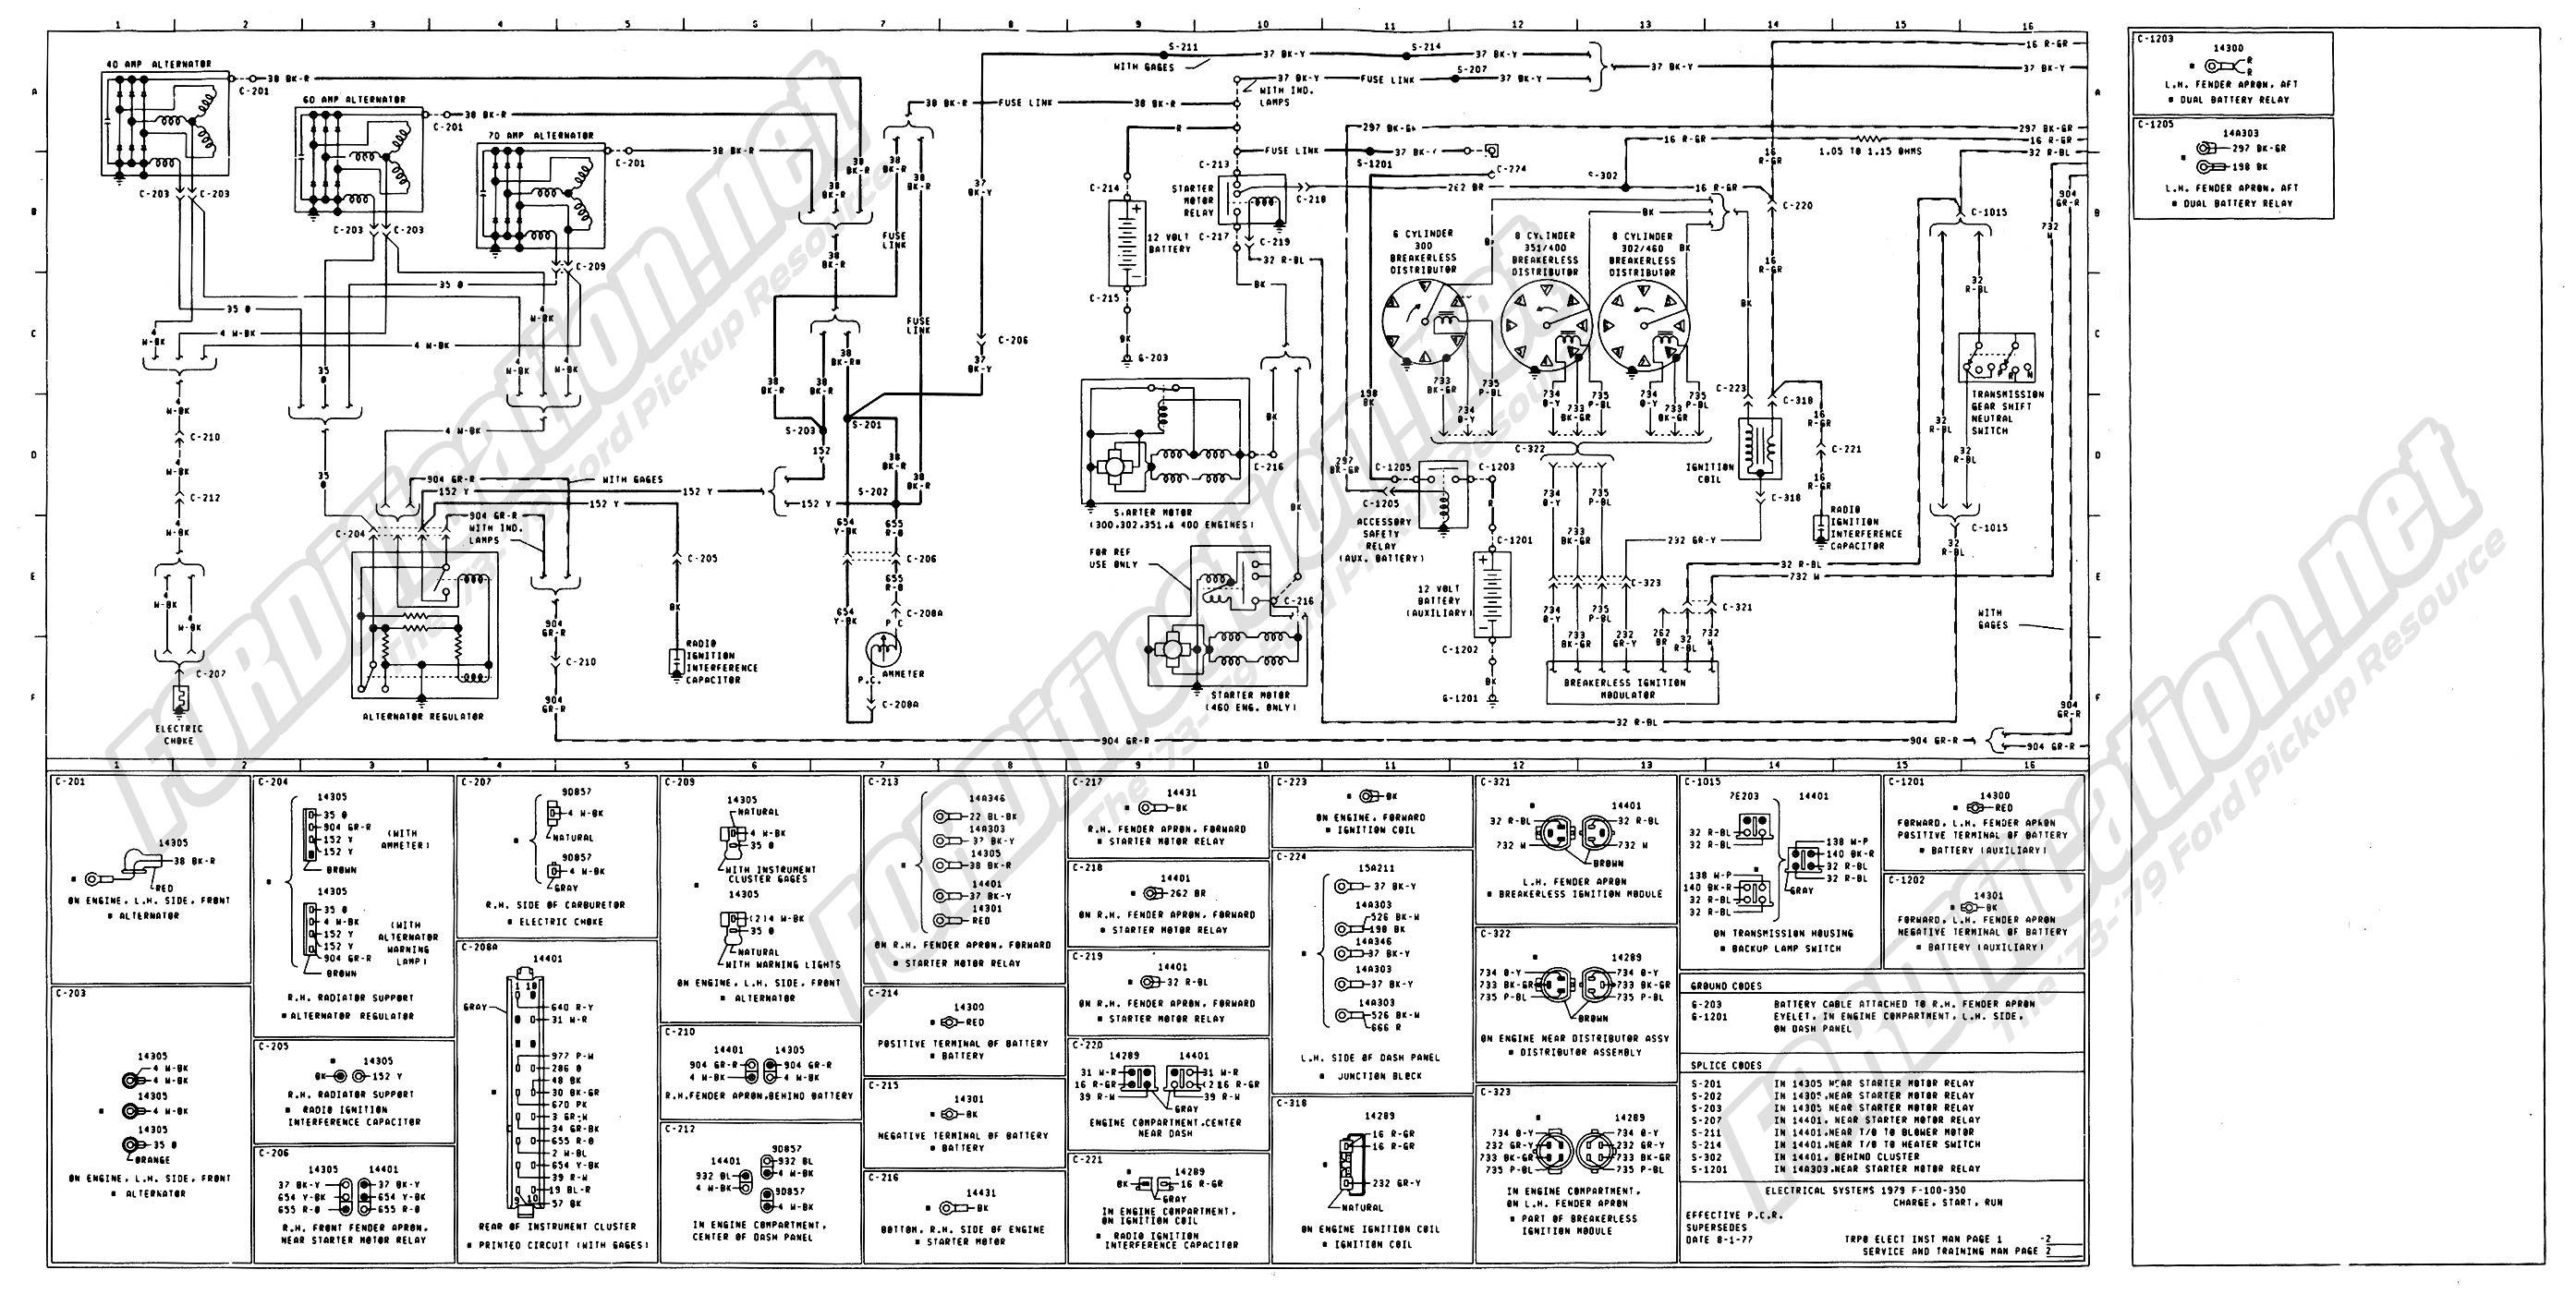 Gm Stereo Wiring Diagram 1979 C20 Library 70 Camaro Z28 1973 Ford Truck Diagrams Schematics Headlight